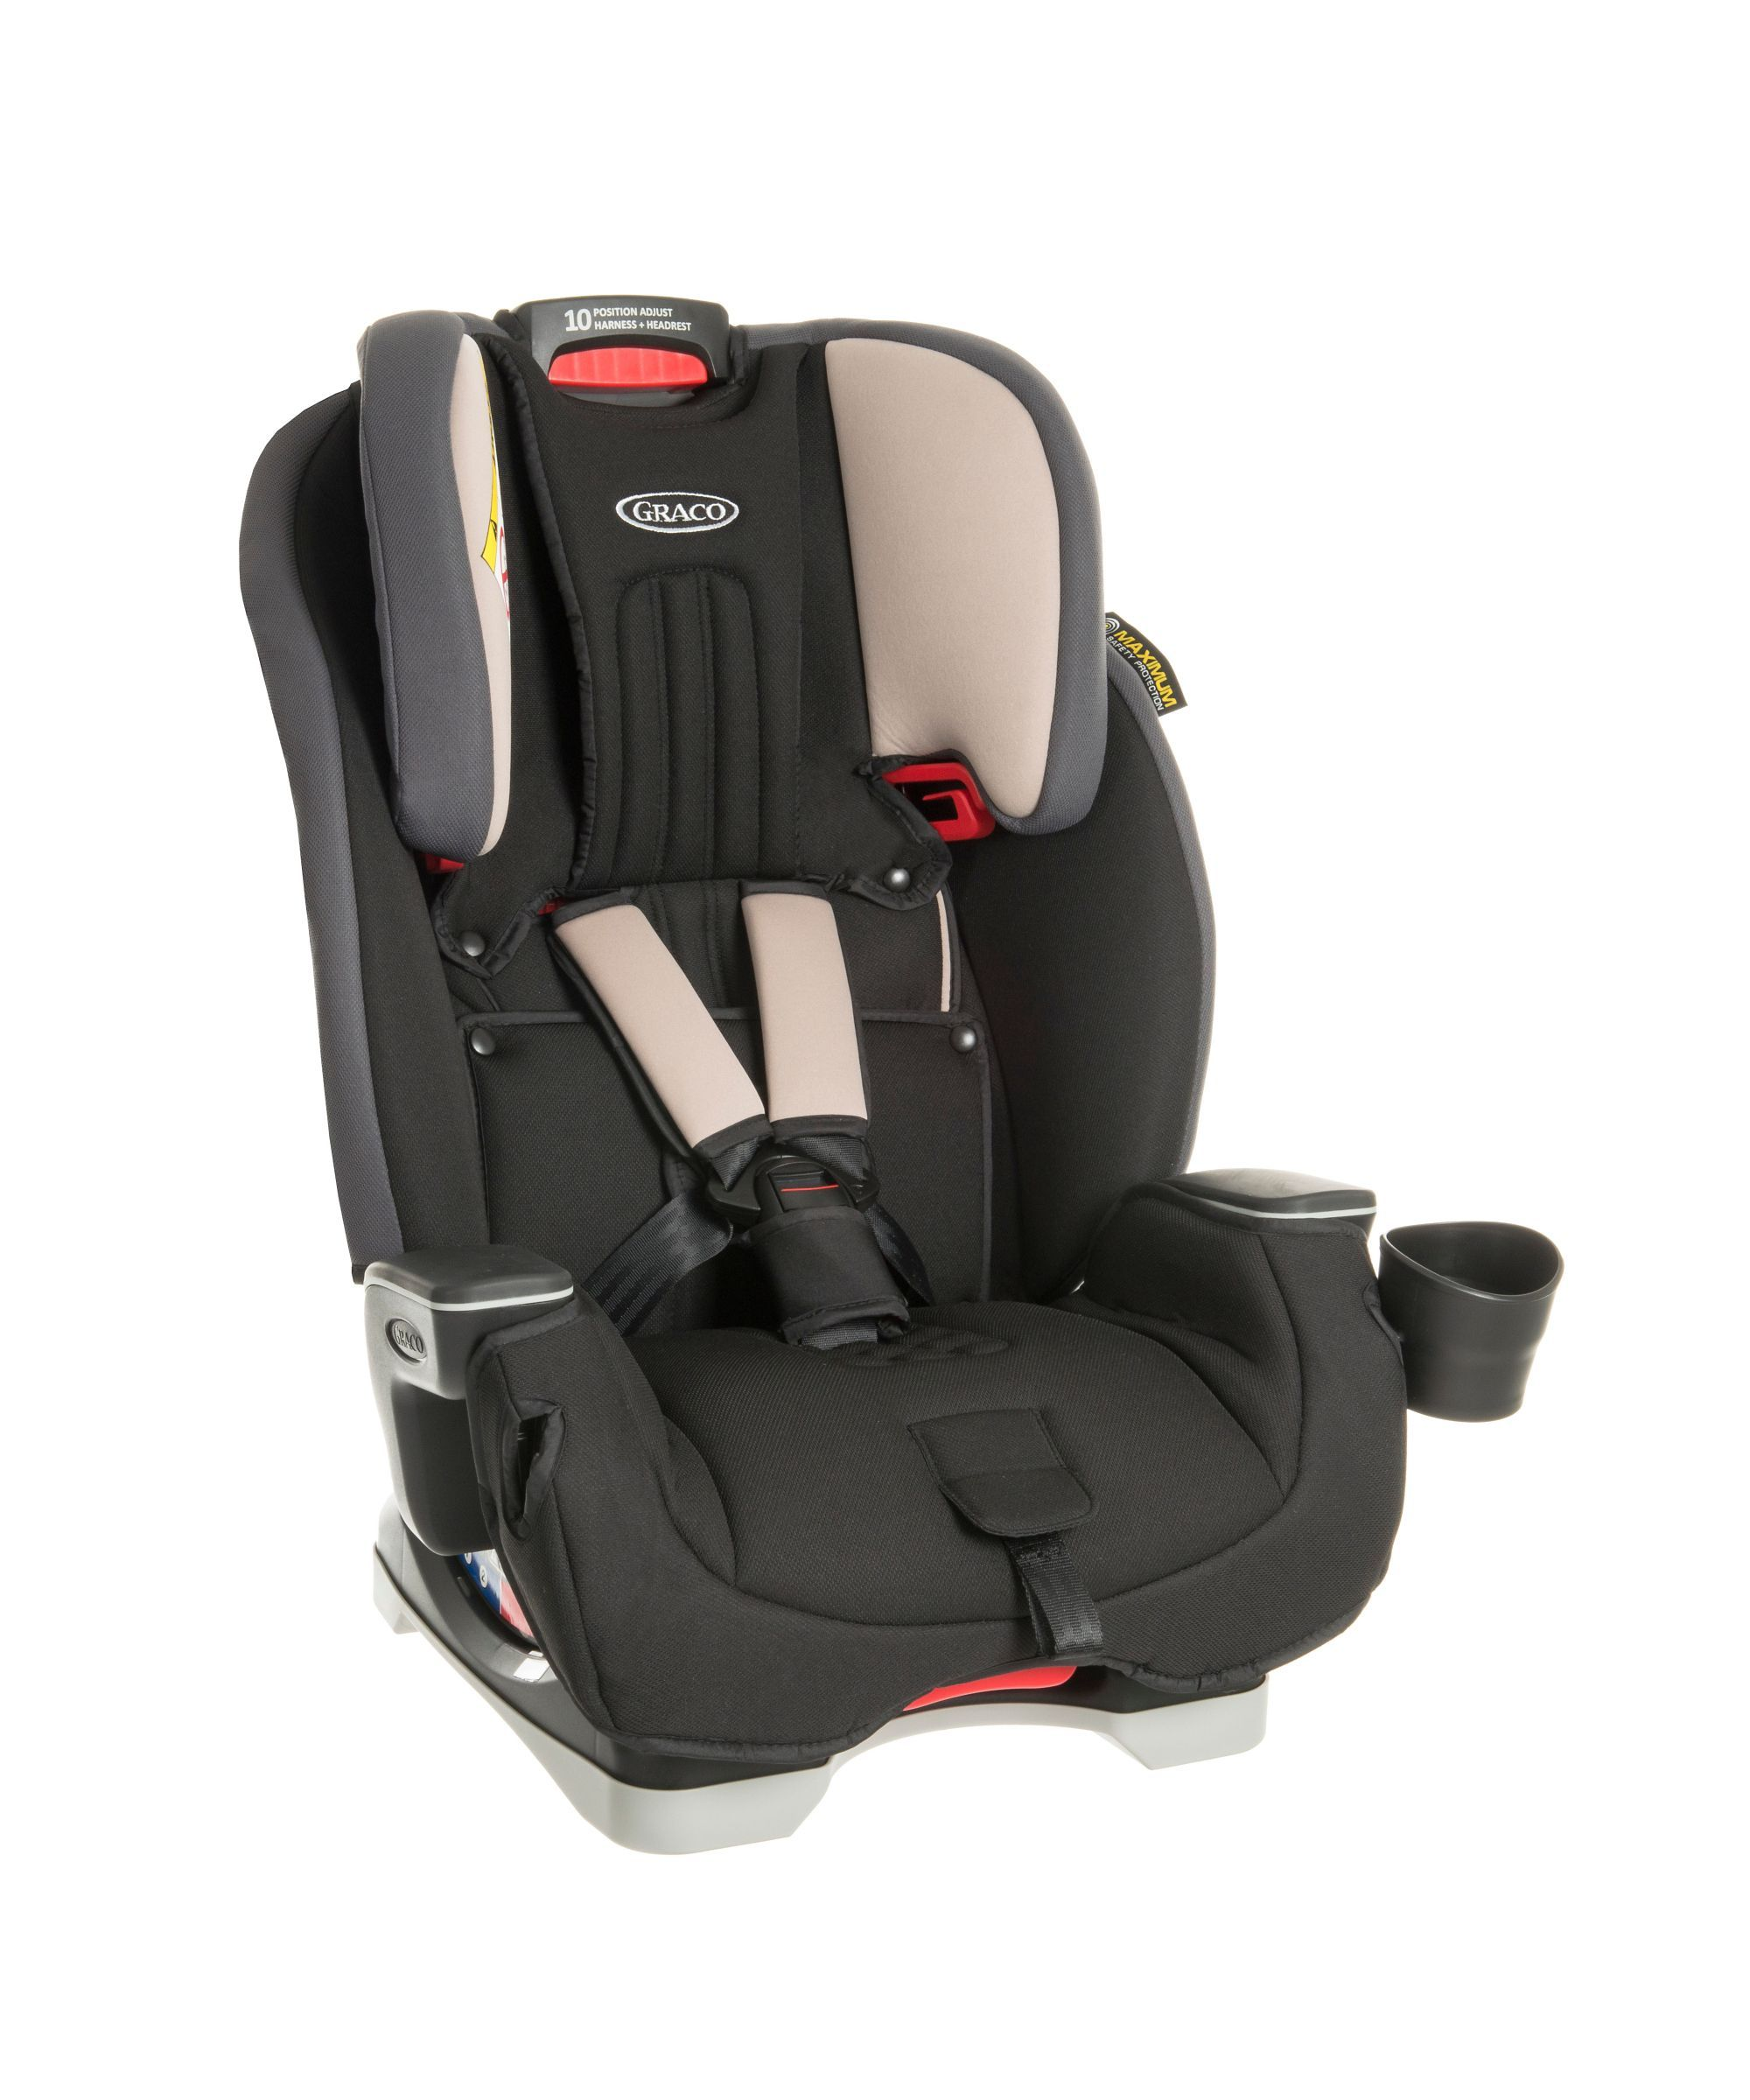 Graco Milestone AllInOne (Group 0+/1/2/3) Car Seat